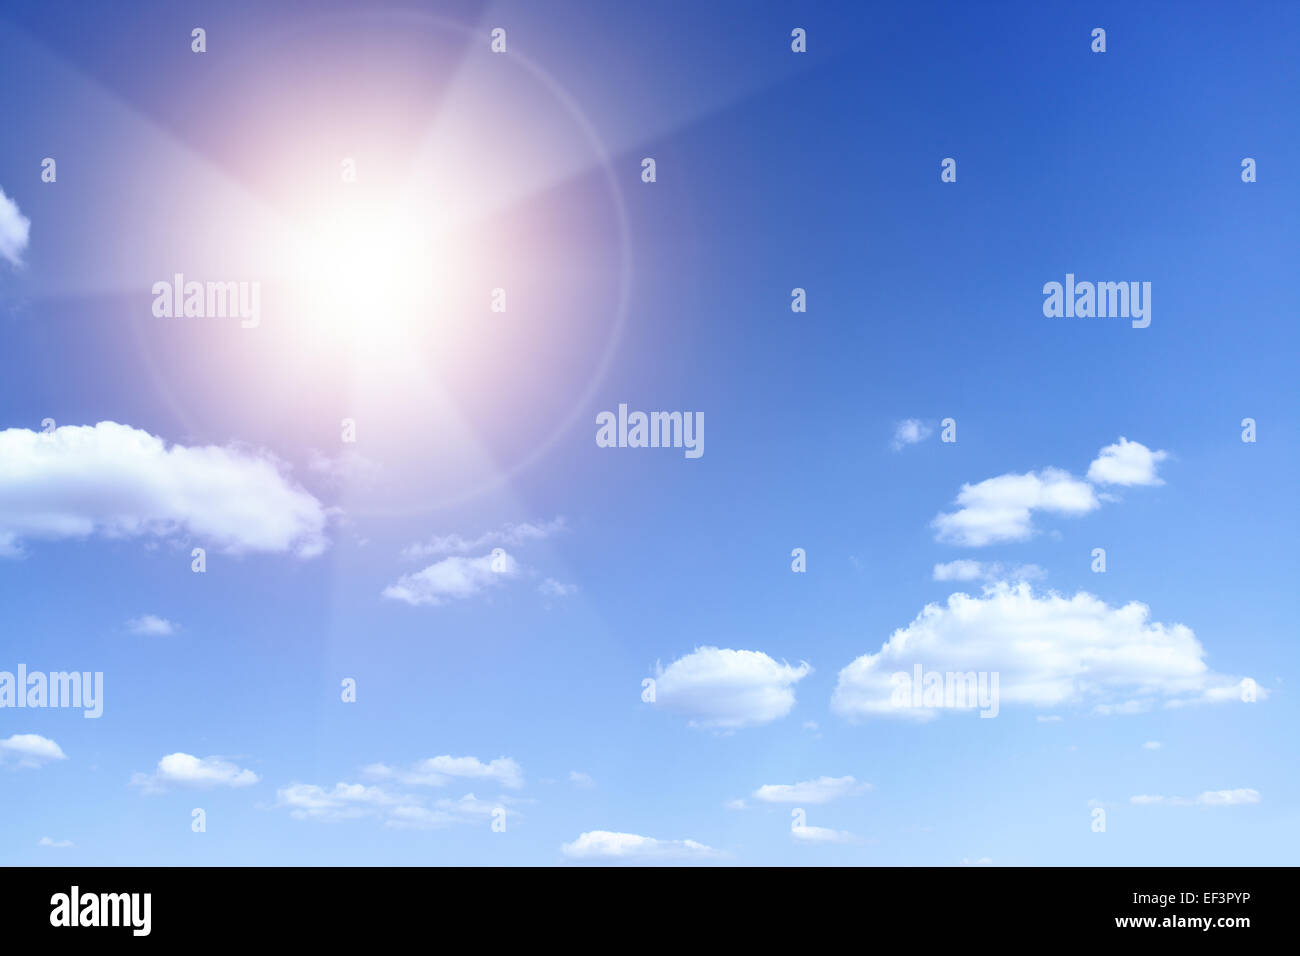 Sun with beams looking as danger radiation sign - Stock Image